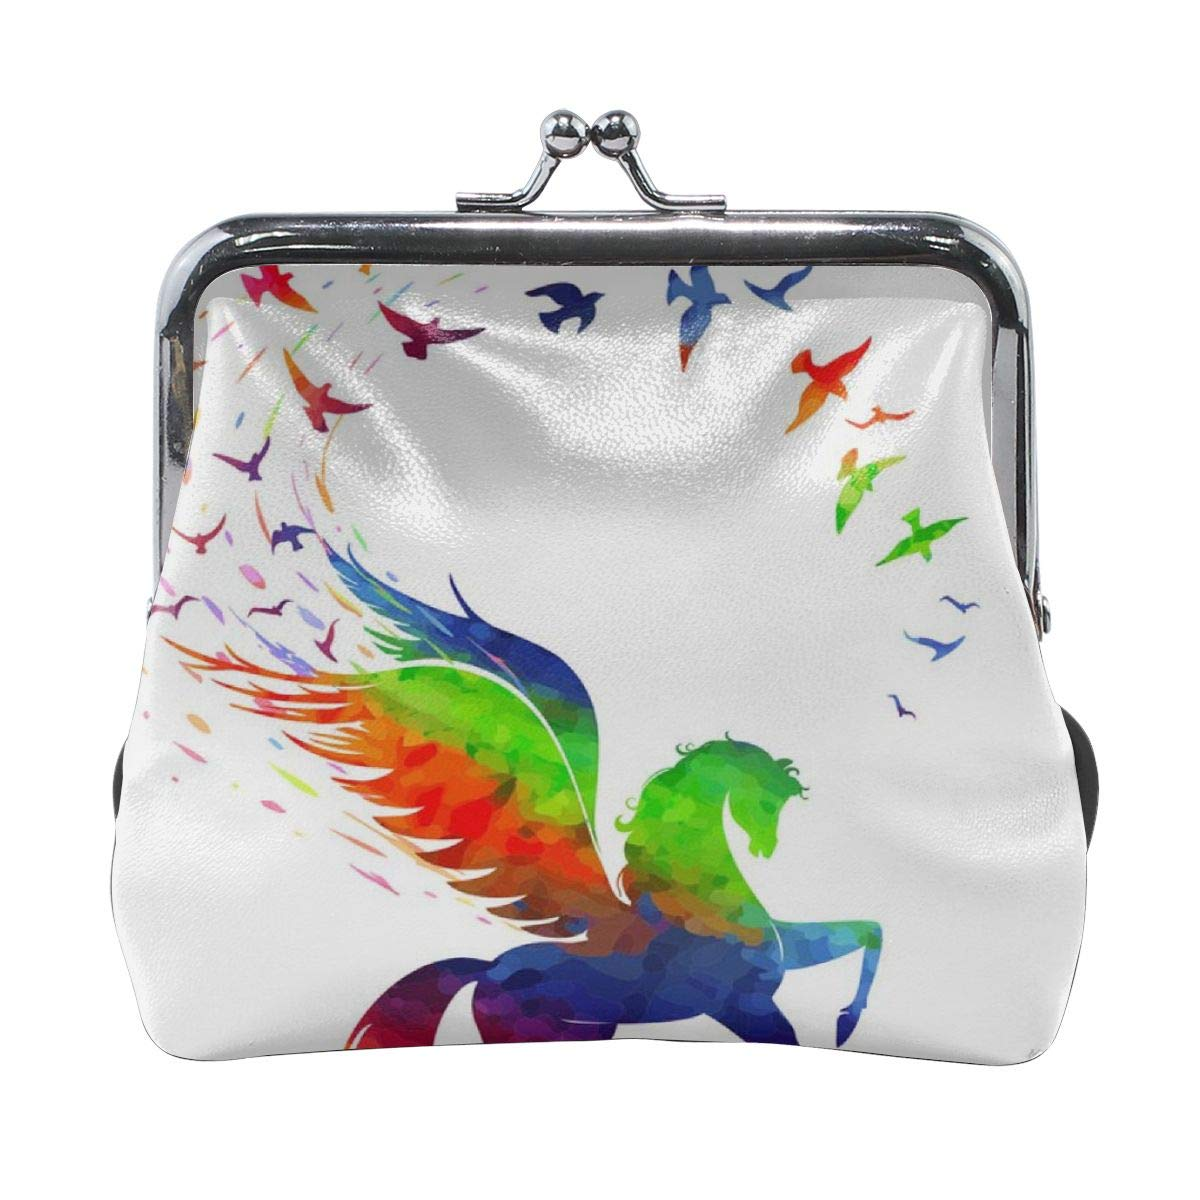 Poream Pegasus Concept Of Inspiration Rainbow Color Personalized Retro Leather Cute Classic Floral Coin Purse Clutch Pouch Wallet For Girls And Womens